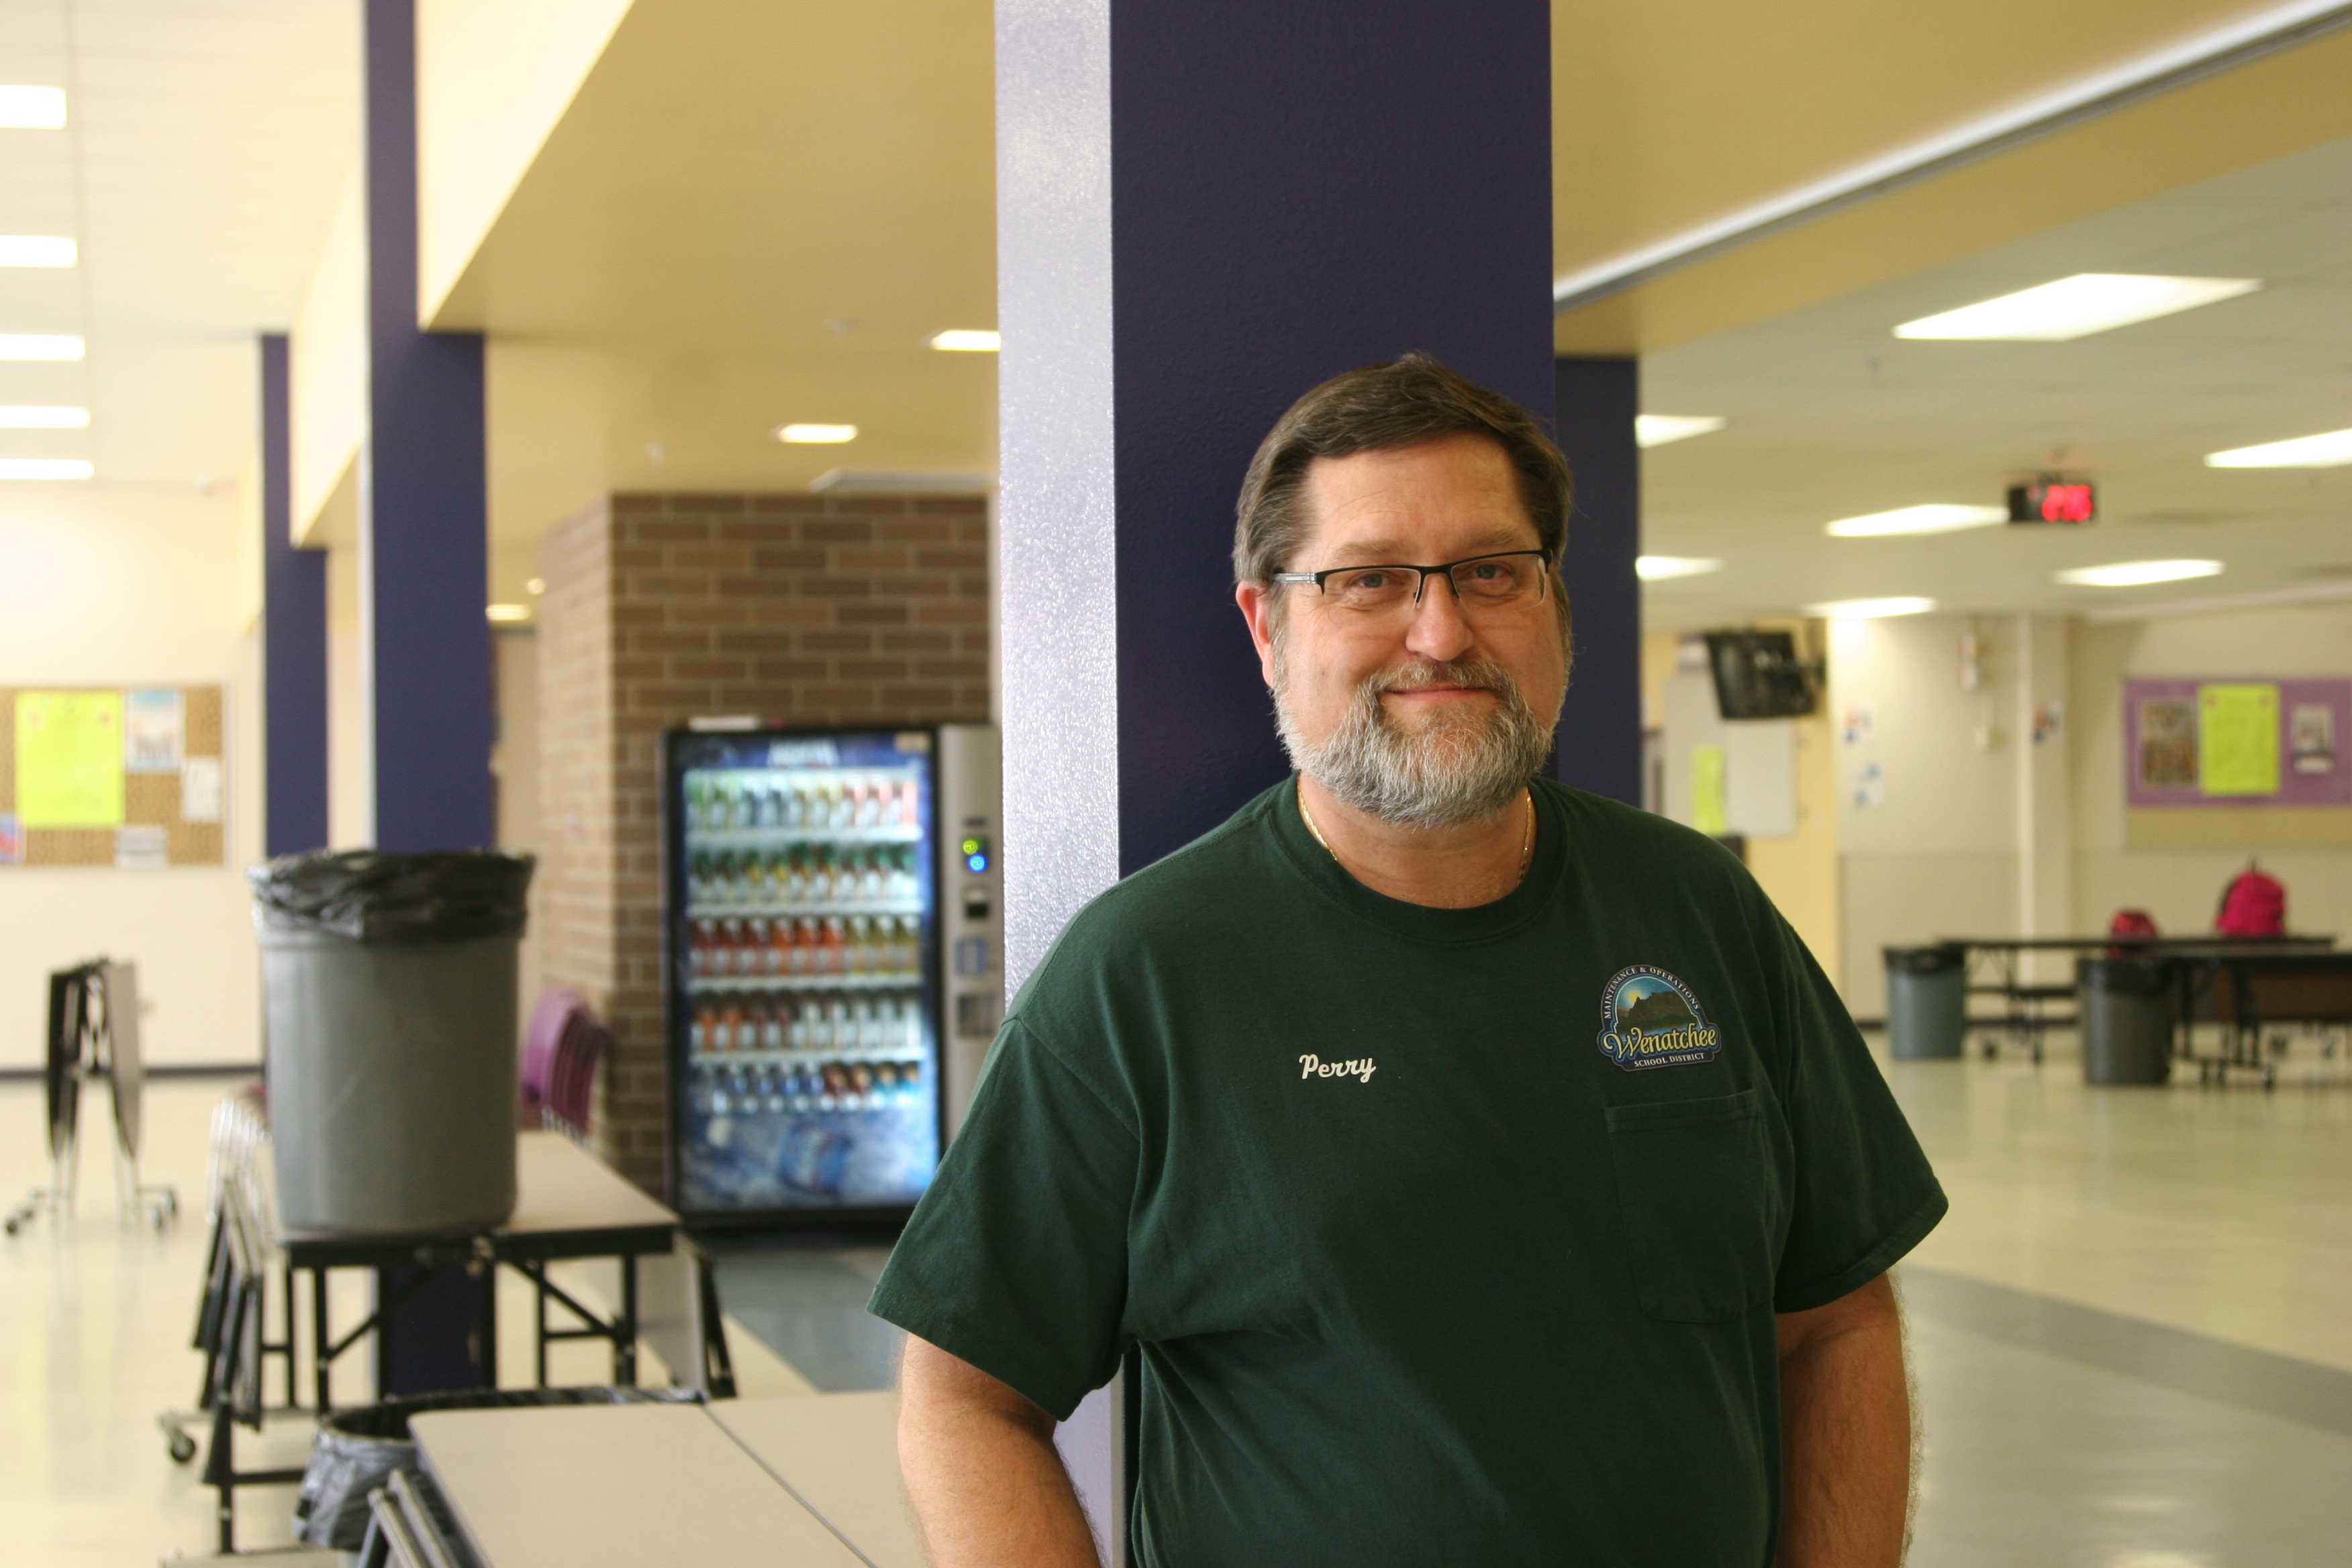 Custodian Perry shares the unheard narrative of one the most important jobs in the school.